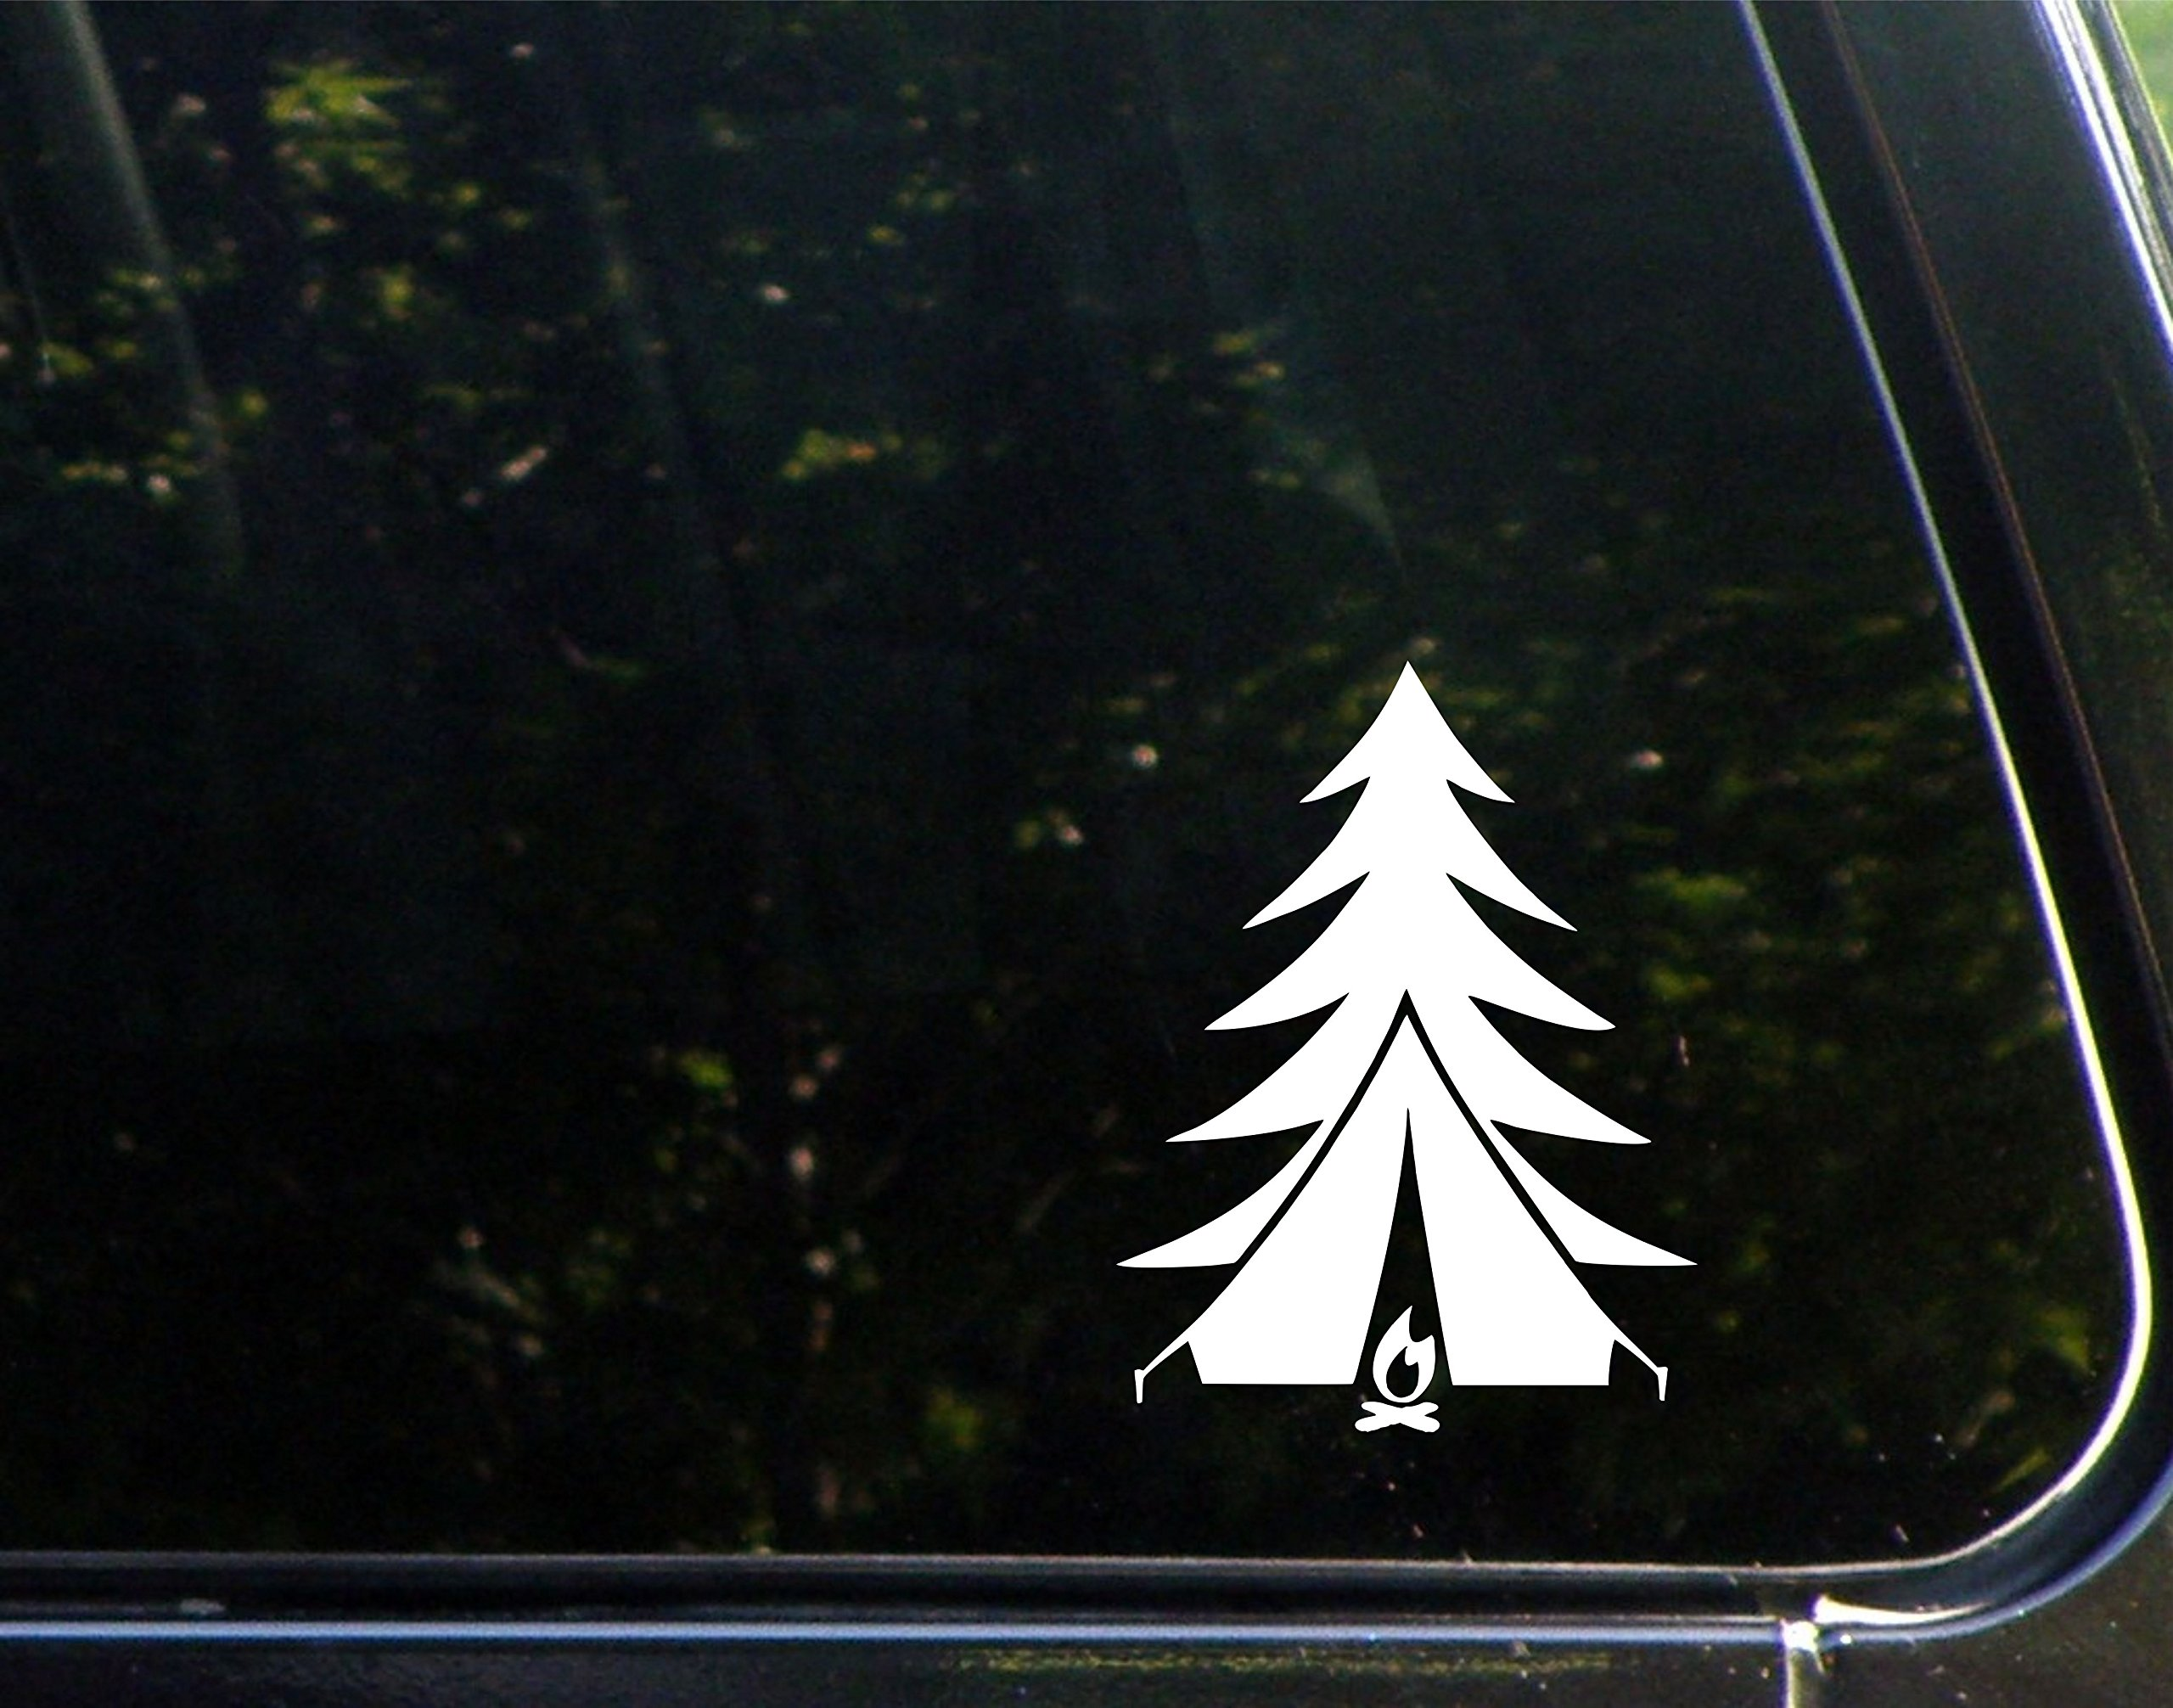 Diamond graphics tree tent fire 5 x 3 3 4 die cut decal bumper sticker for windows cars trucks laptops etc